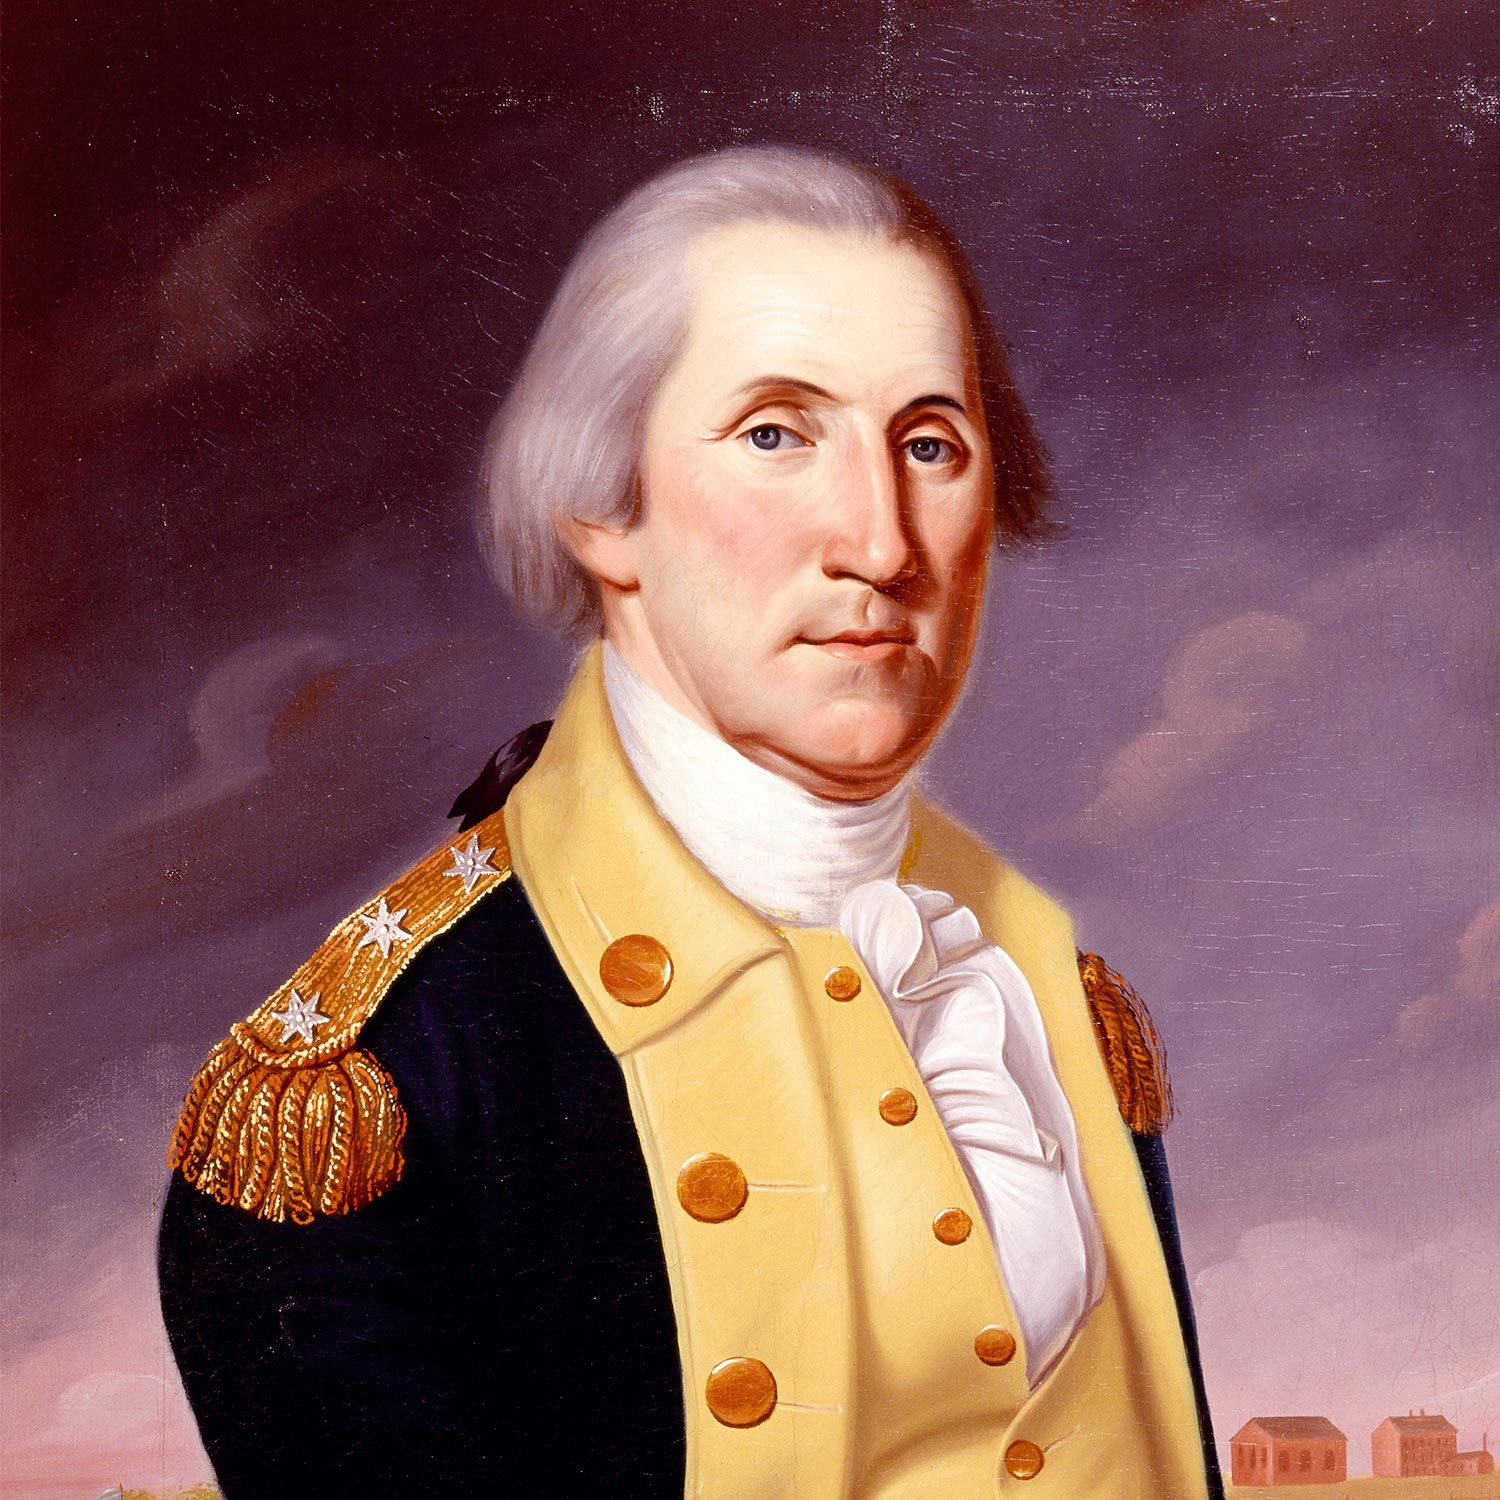 the military career of george washington essay Portrait of george washington in military uniform, painted by rembrandt peale one of washington's most important contributions as commander-in-chief was to establish the precedent that civilian-elected officials, rather than military officers, possessed ultimate authority over the military.